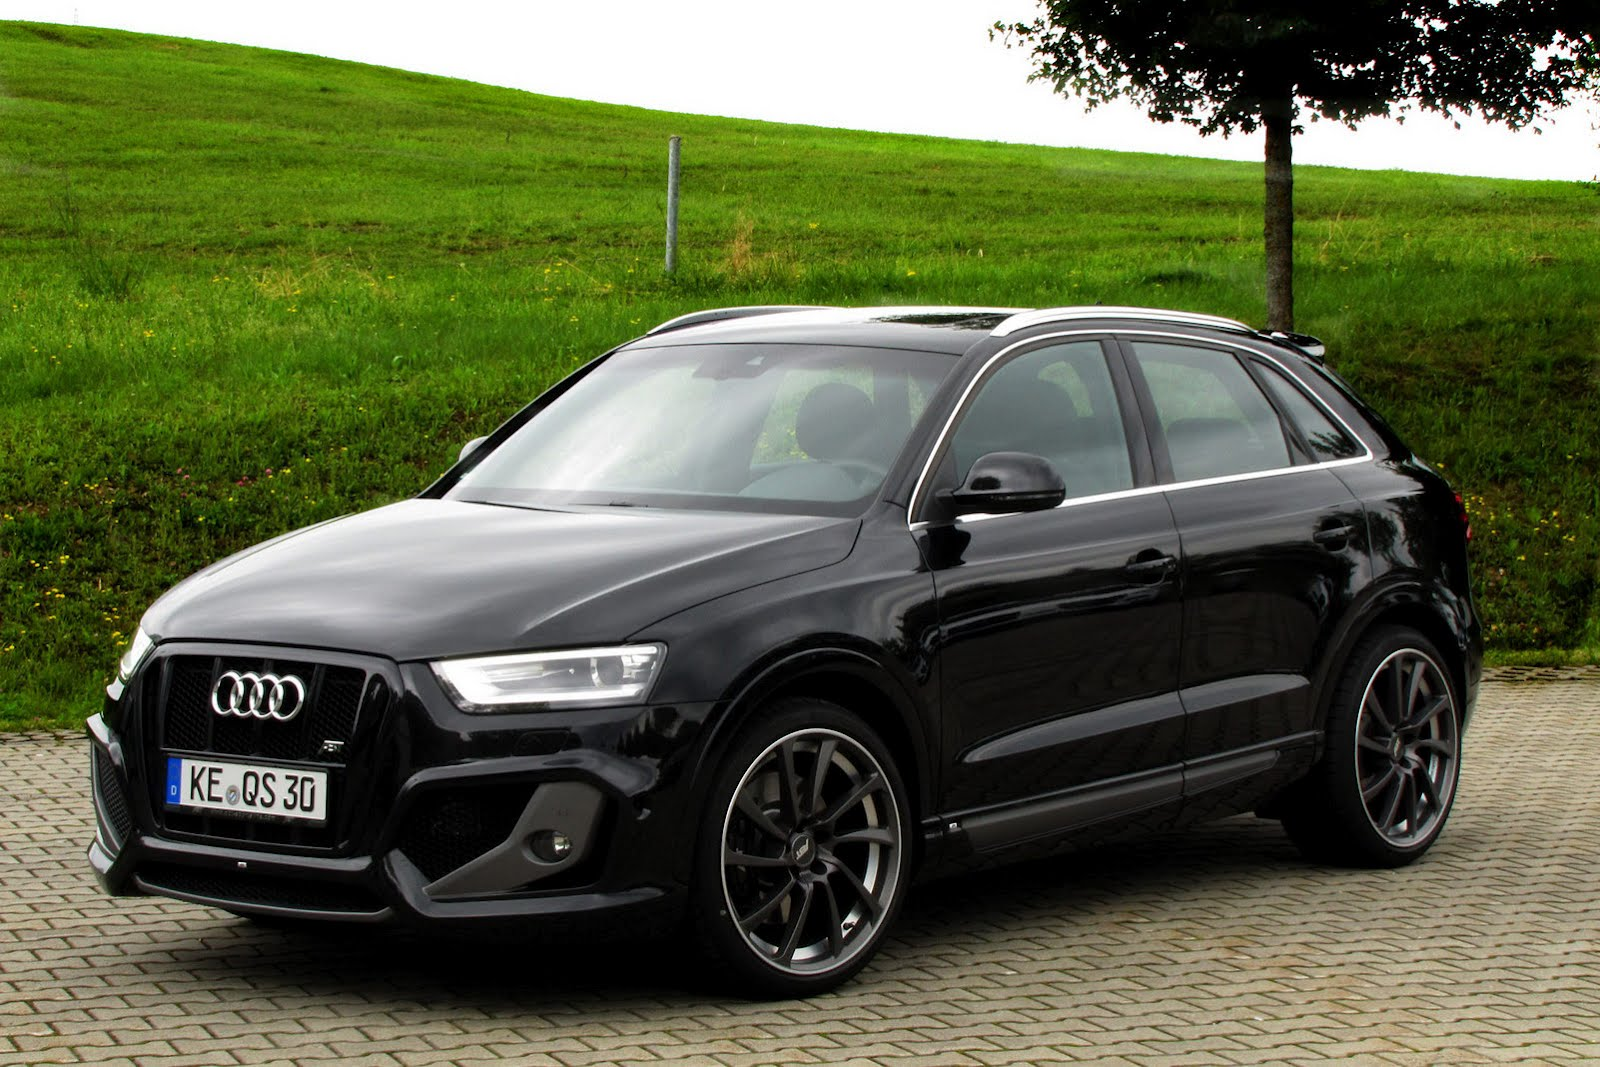 audi q3 prepared by abt sportsline carz tuning. Black Bedroom Furniture Sets. Home Design Ideas